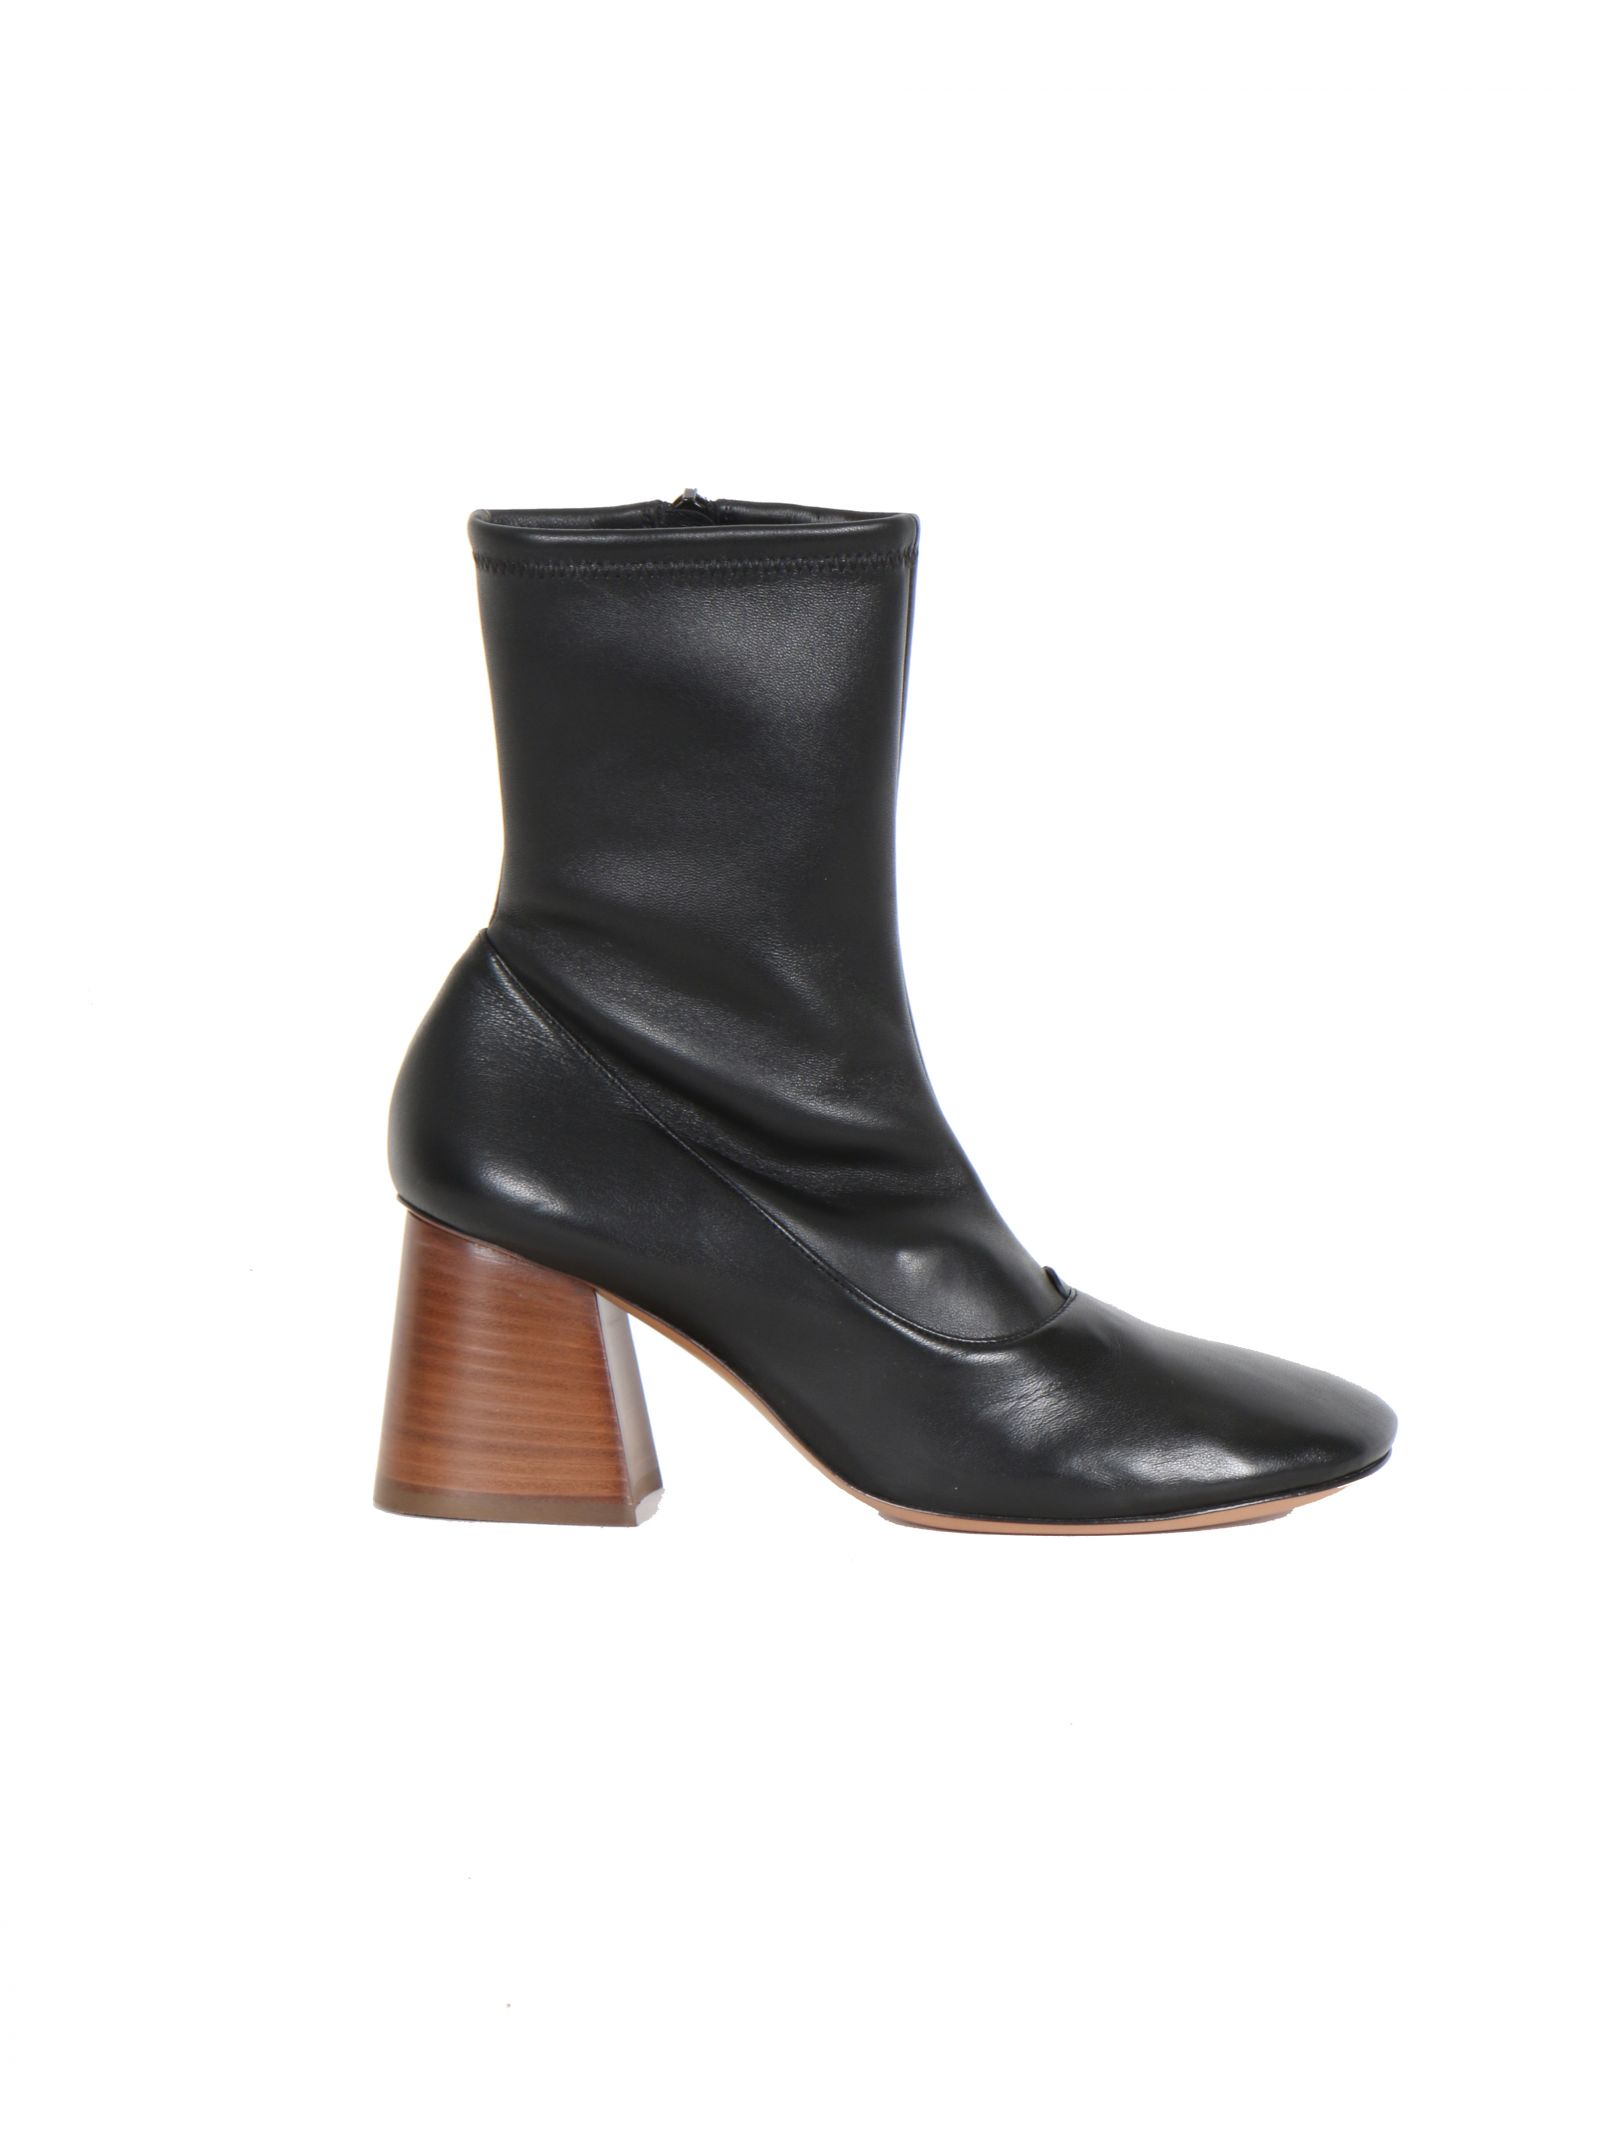 Celine Woman's Shoes - Celine - Civico 9